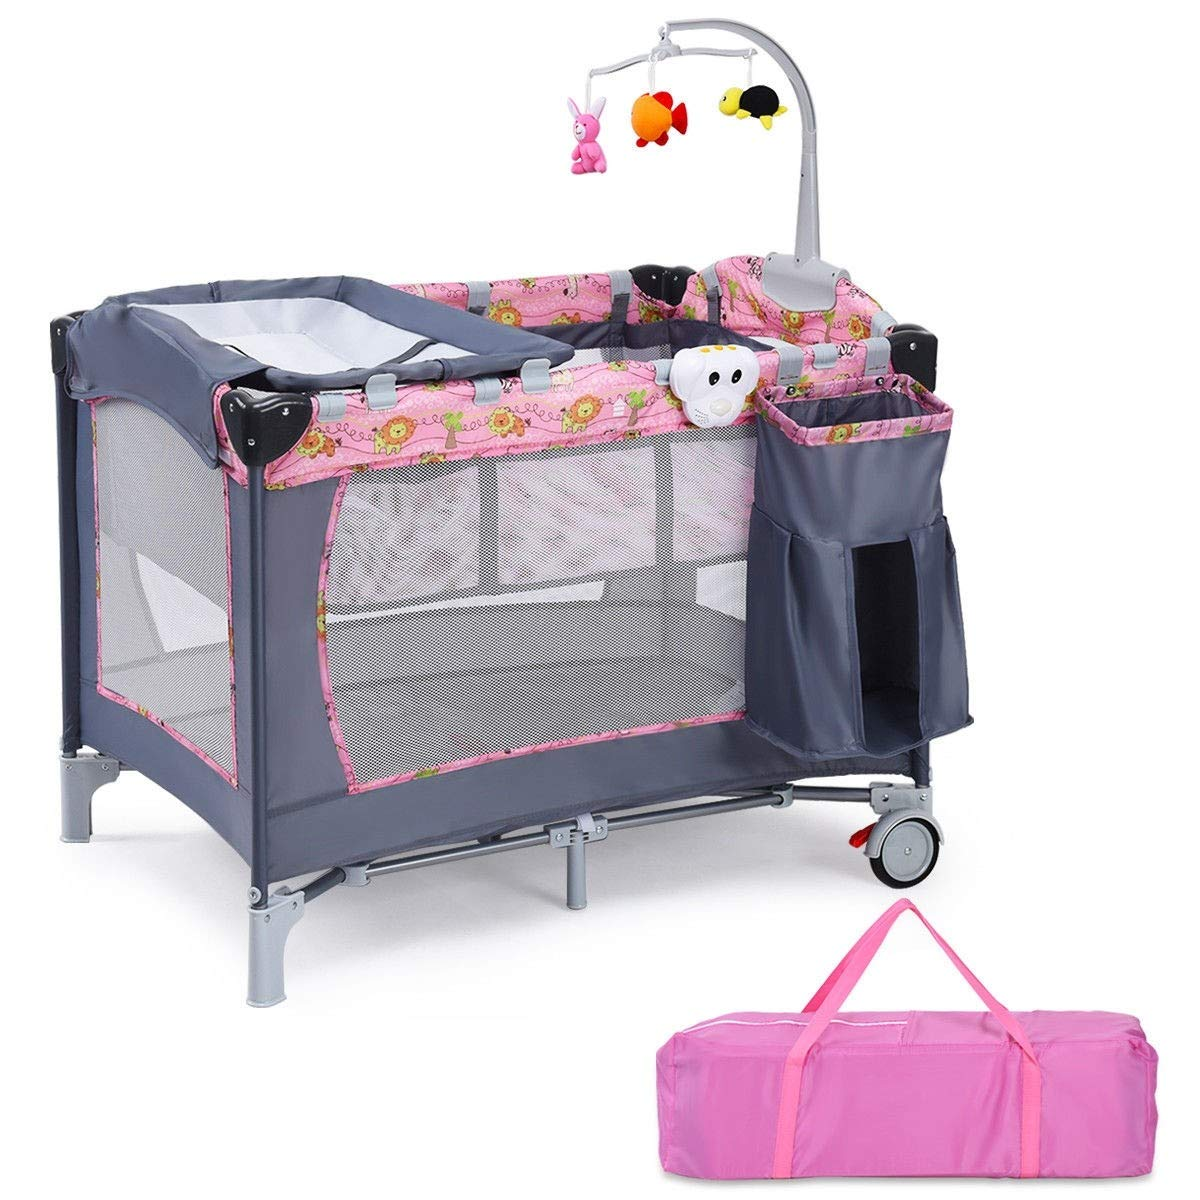 LHONE Baby Trend Pack Play Foldable Travel Bassinet Bed Baby Trend Nursery Center 3 in 1 Reversible Napper and Changer Baby Travel Infant Bassinet Gray Bed (Pink) by LHONE